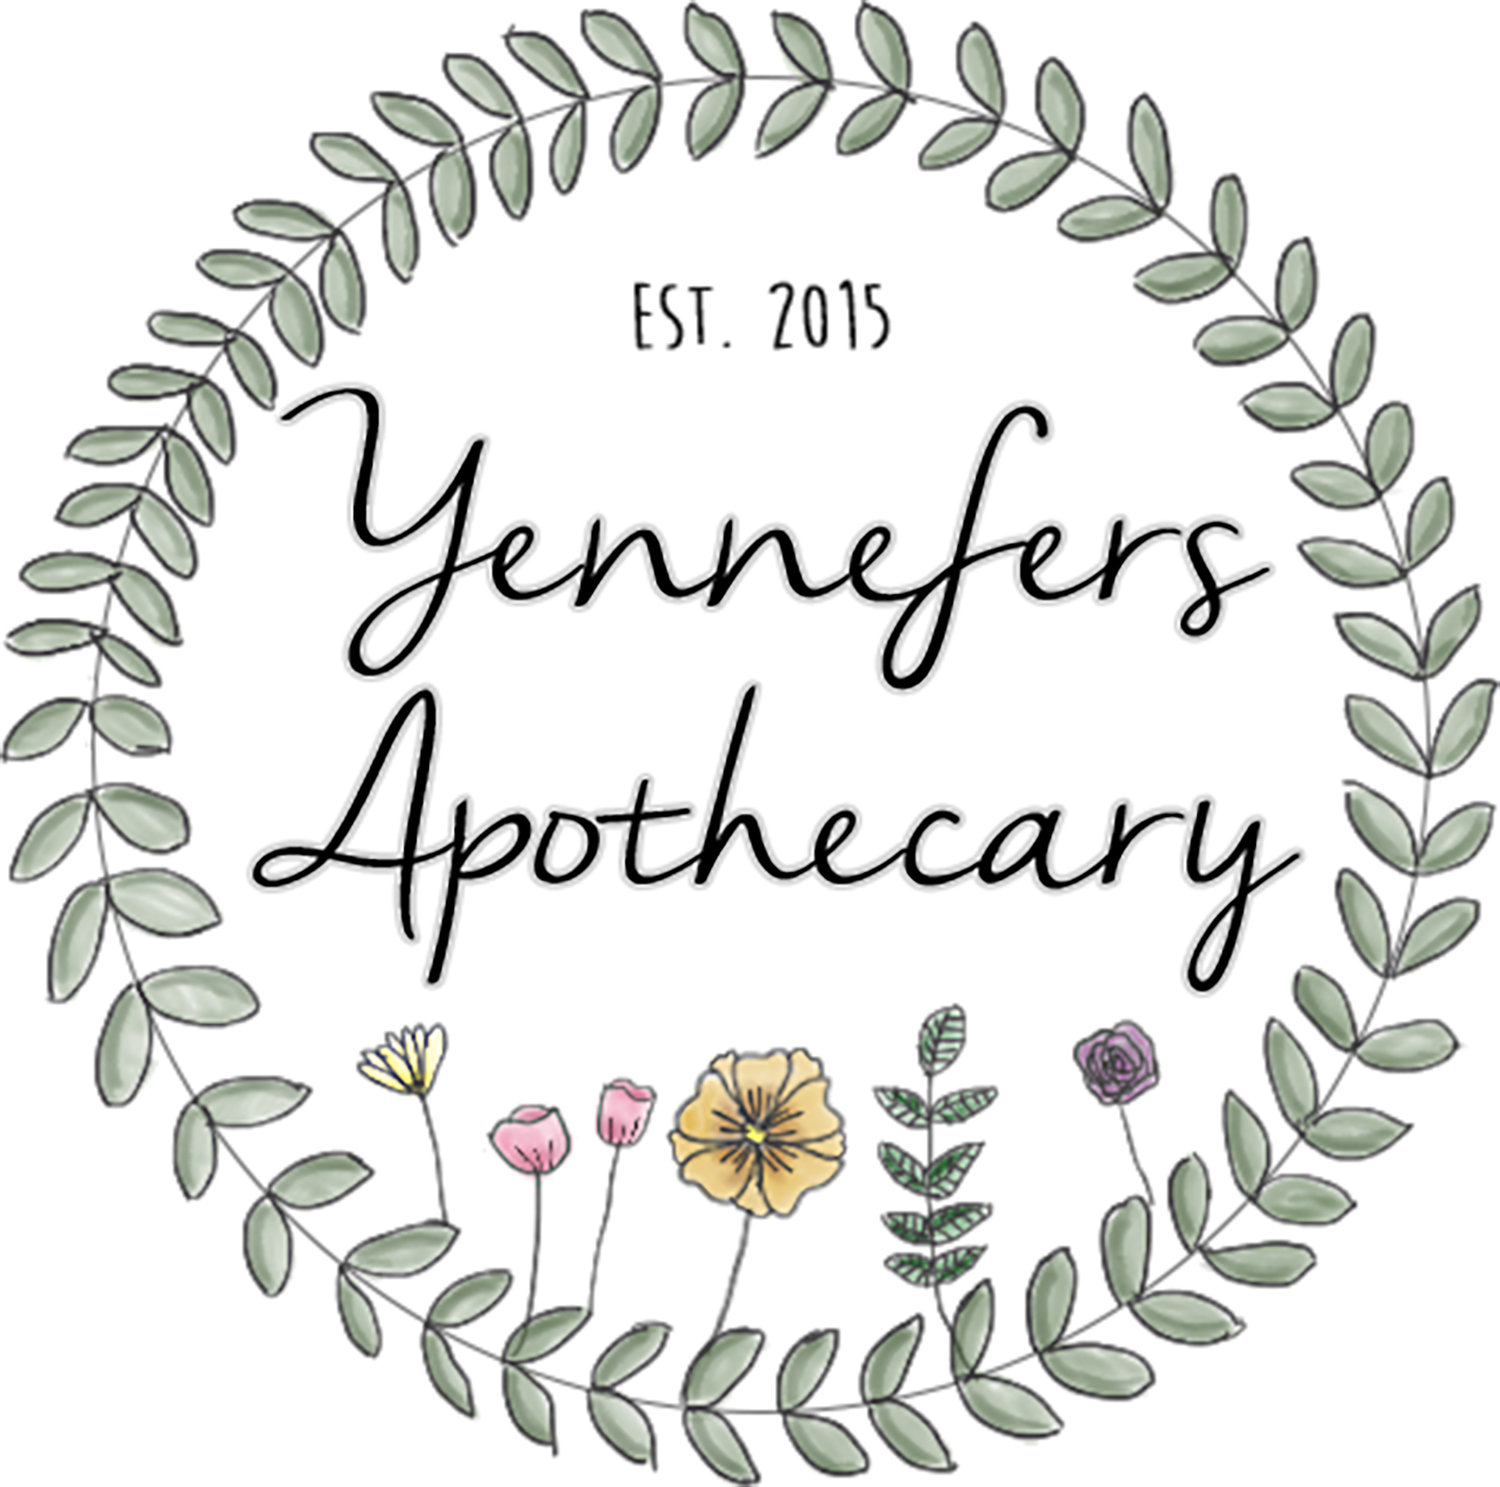 Yennefer's Apothecary